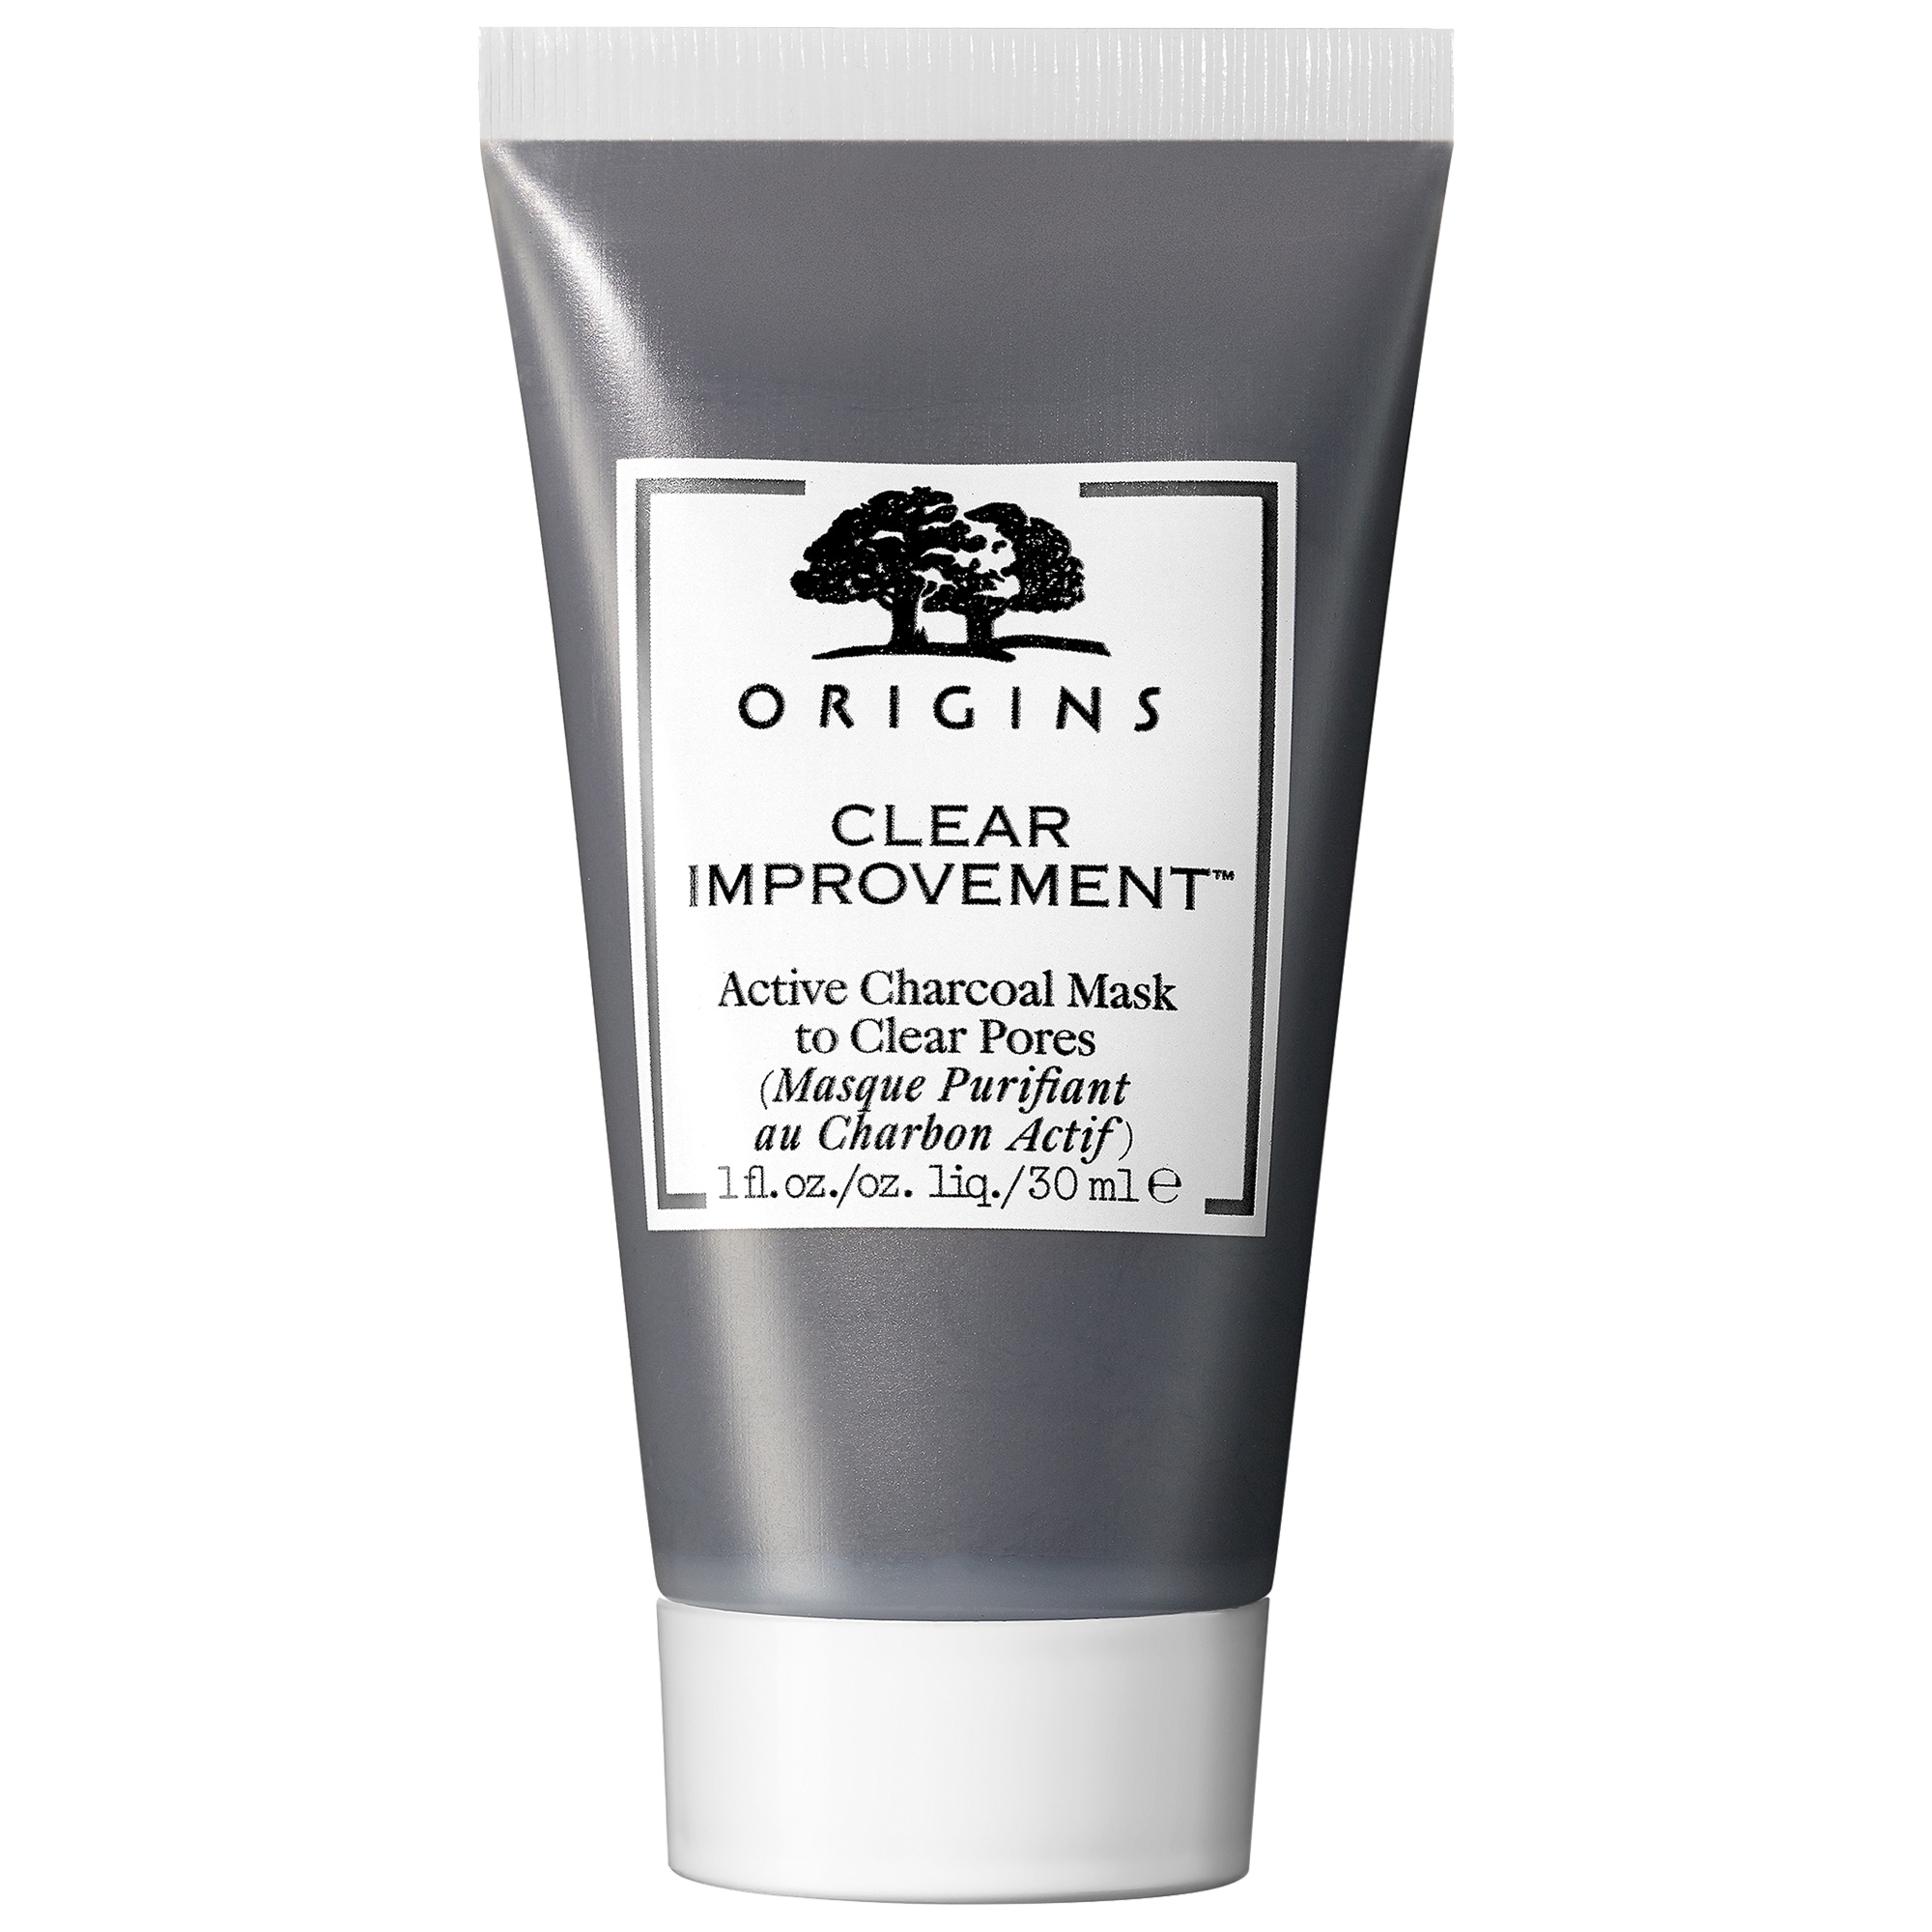 Origins - Clear Improvement® Active Charcoal Mask to Clear Pores